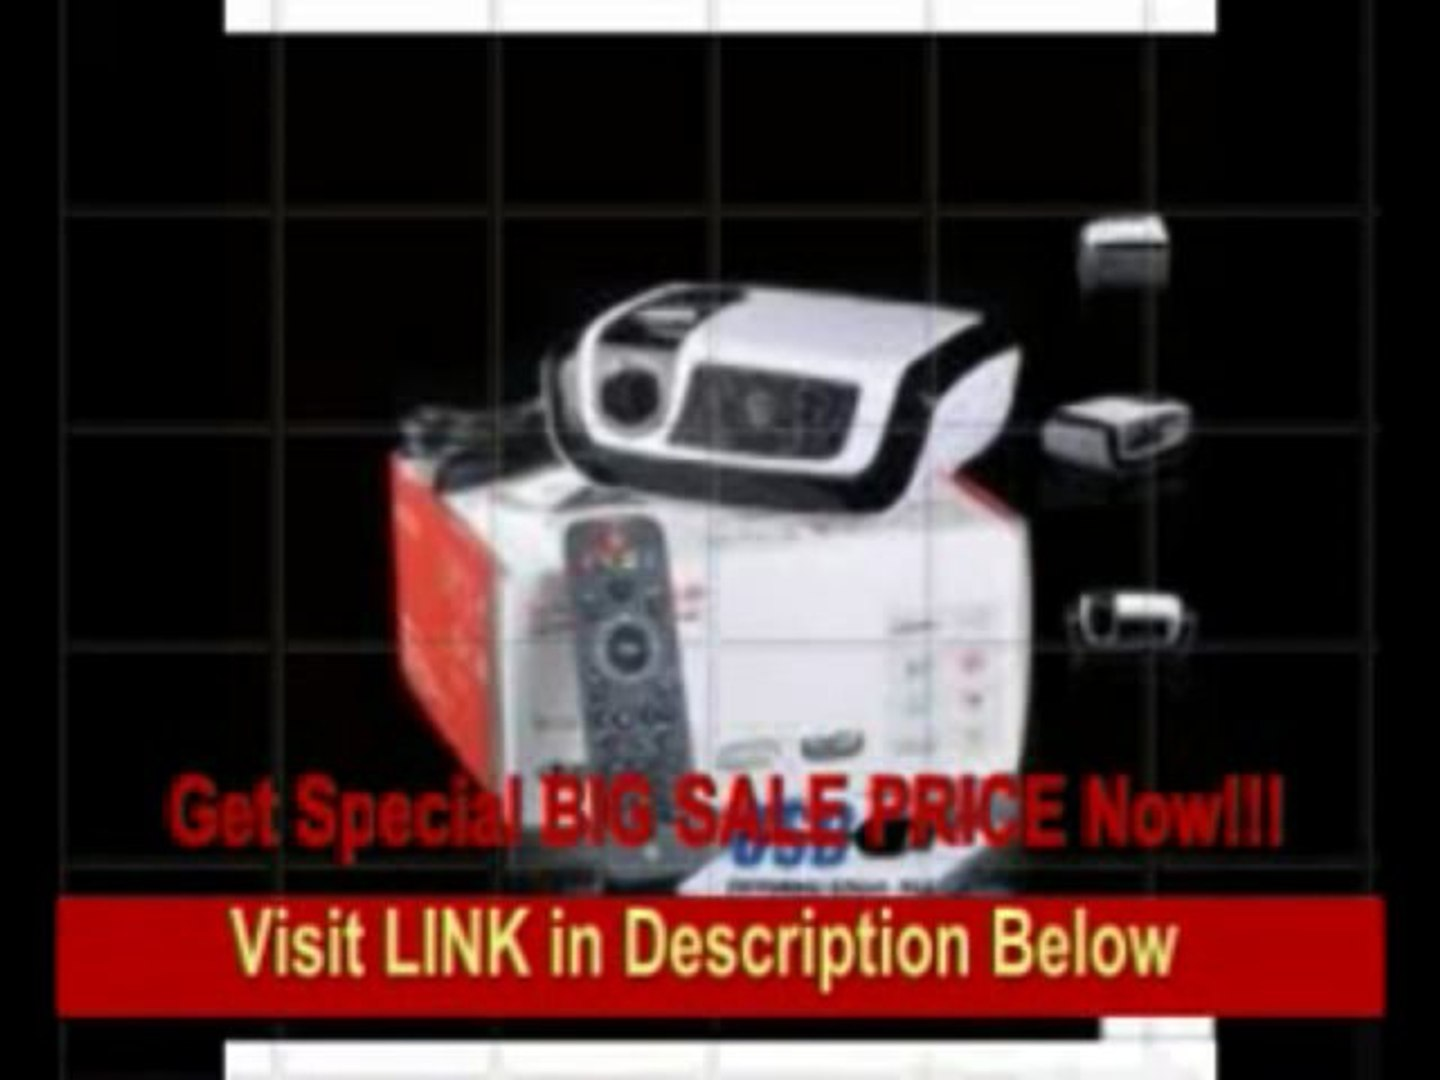 [FOR SALE] REX-CINE Latest 1080p Dlp Android 4.0 WIFI ICS Osram LED Lamp Technology Projector RX-C7